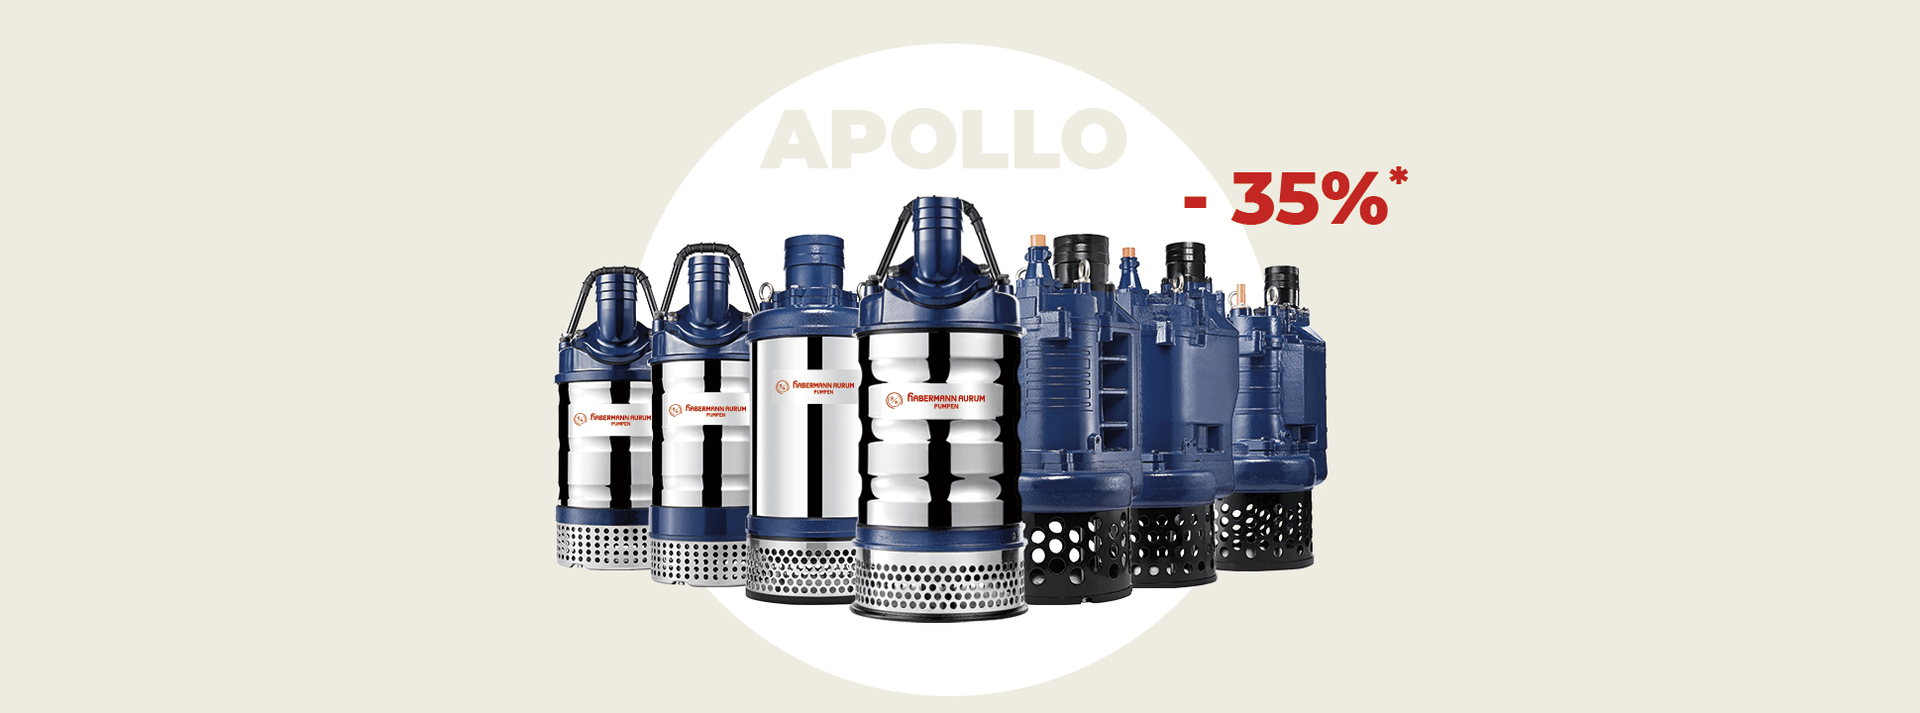 Up to 35% discount by buying five Apollo-Pumps.